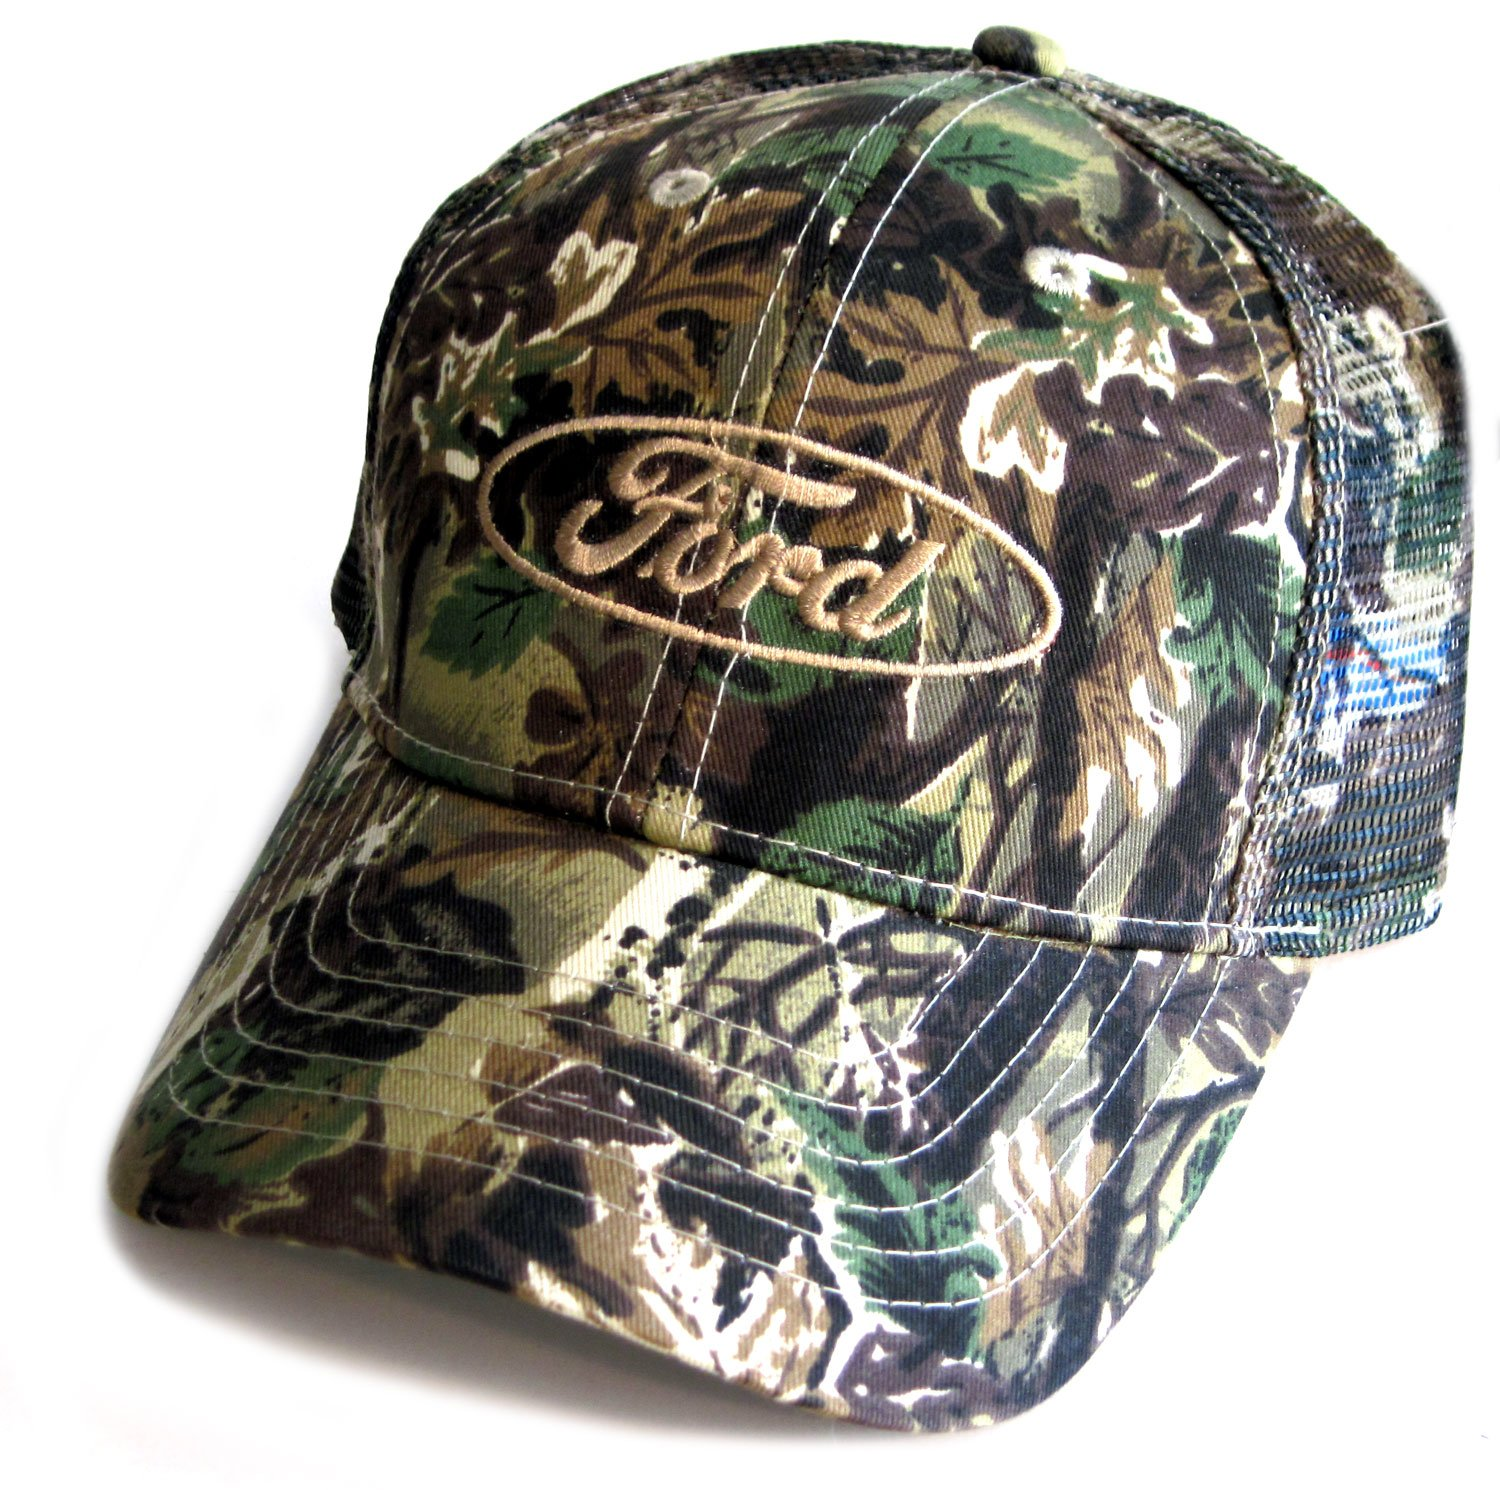 Gregs Automotive Ford Camo Camouflage Mesh Back Hat Cap Bundle with Driving Style Decal Ford Camouflage 227-MESH